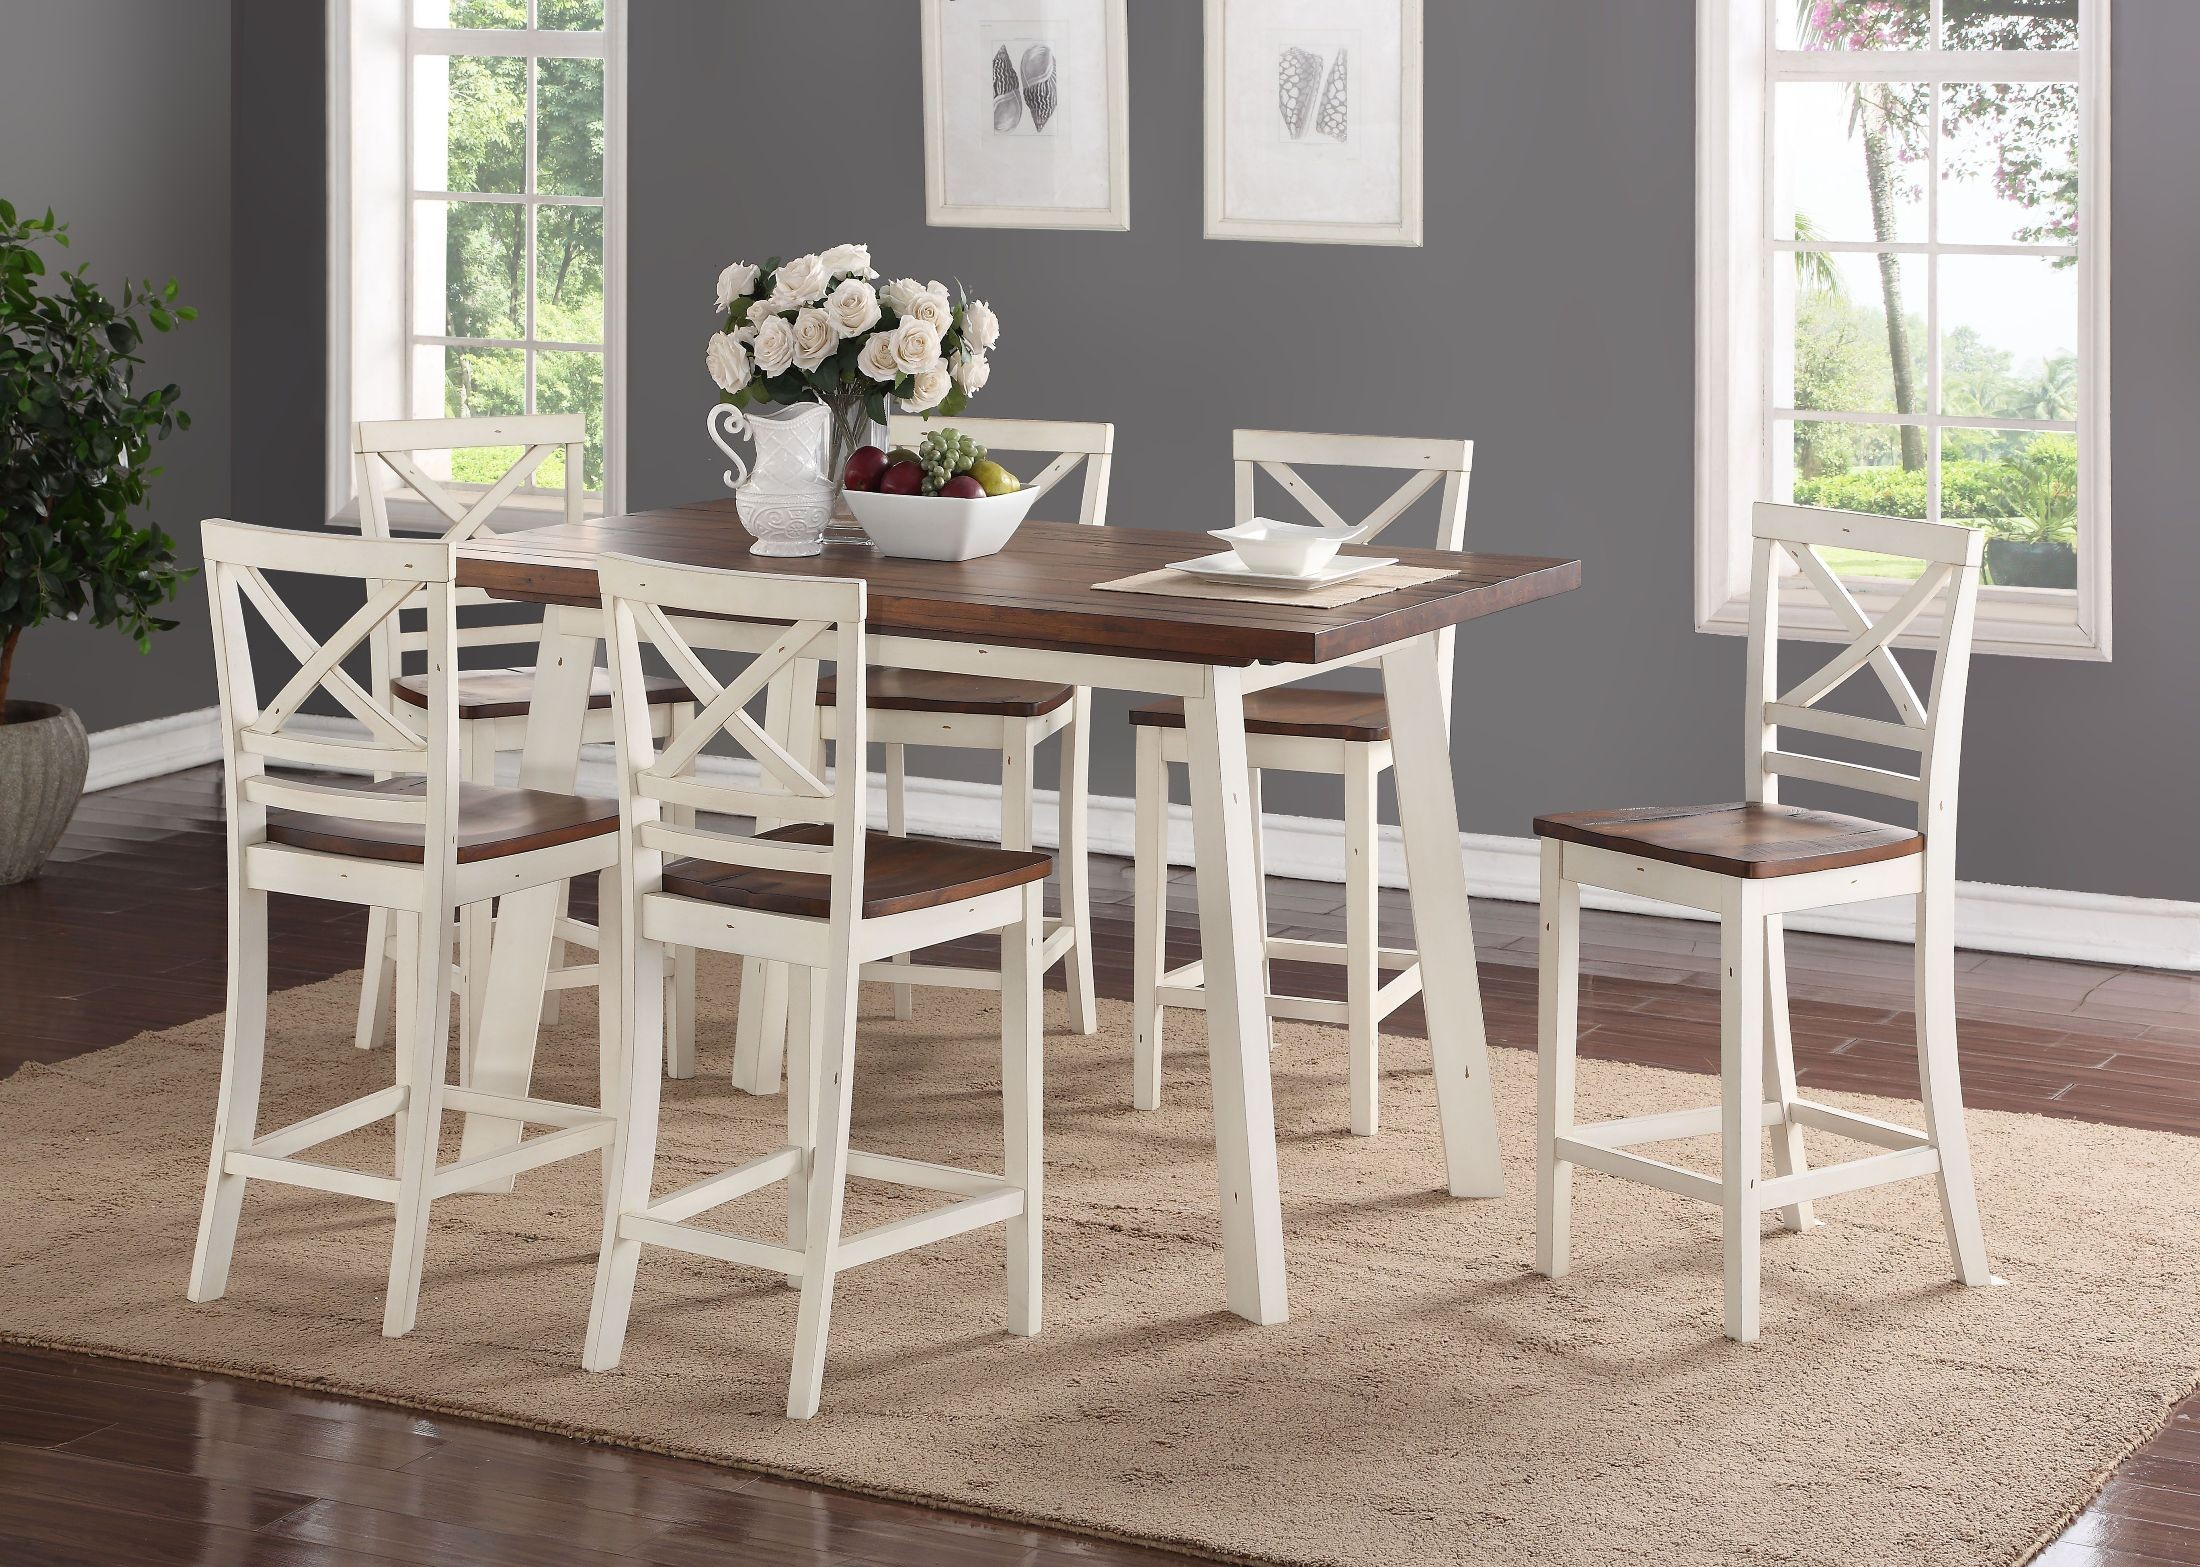 Amelia White And Chestnut Counter Height Dining Table Set